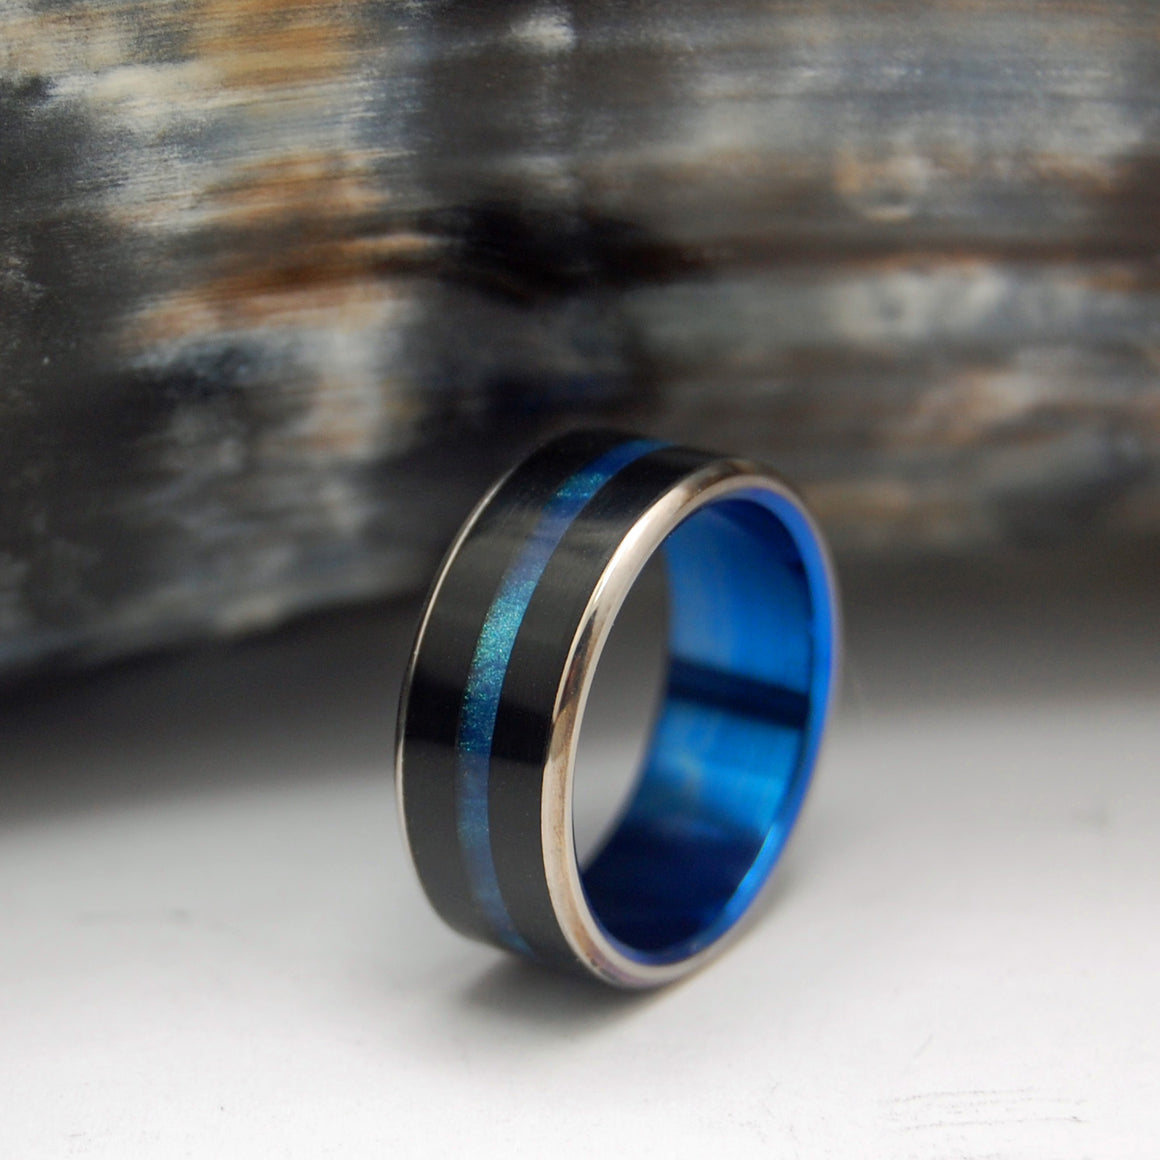 Onyx Stone and Blue | Black Rings - Black Wedding Ring - Mens Wedding Ring